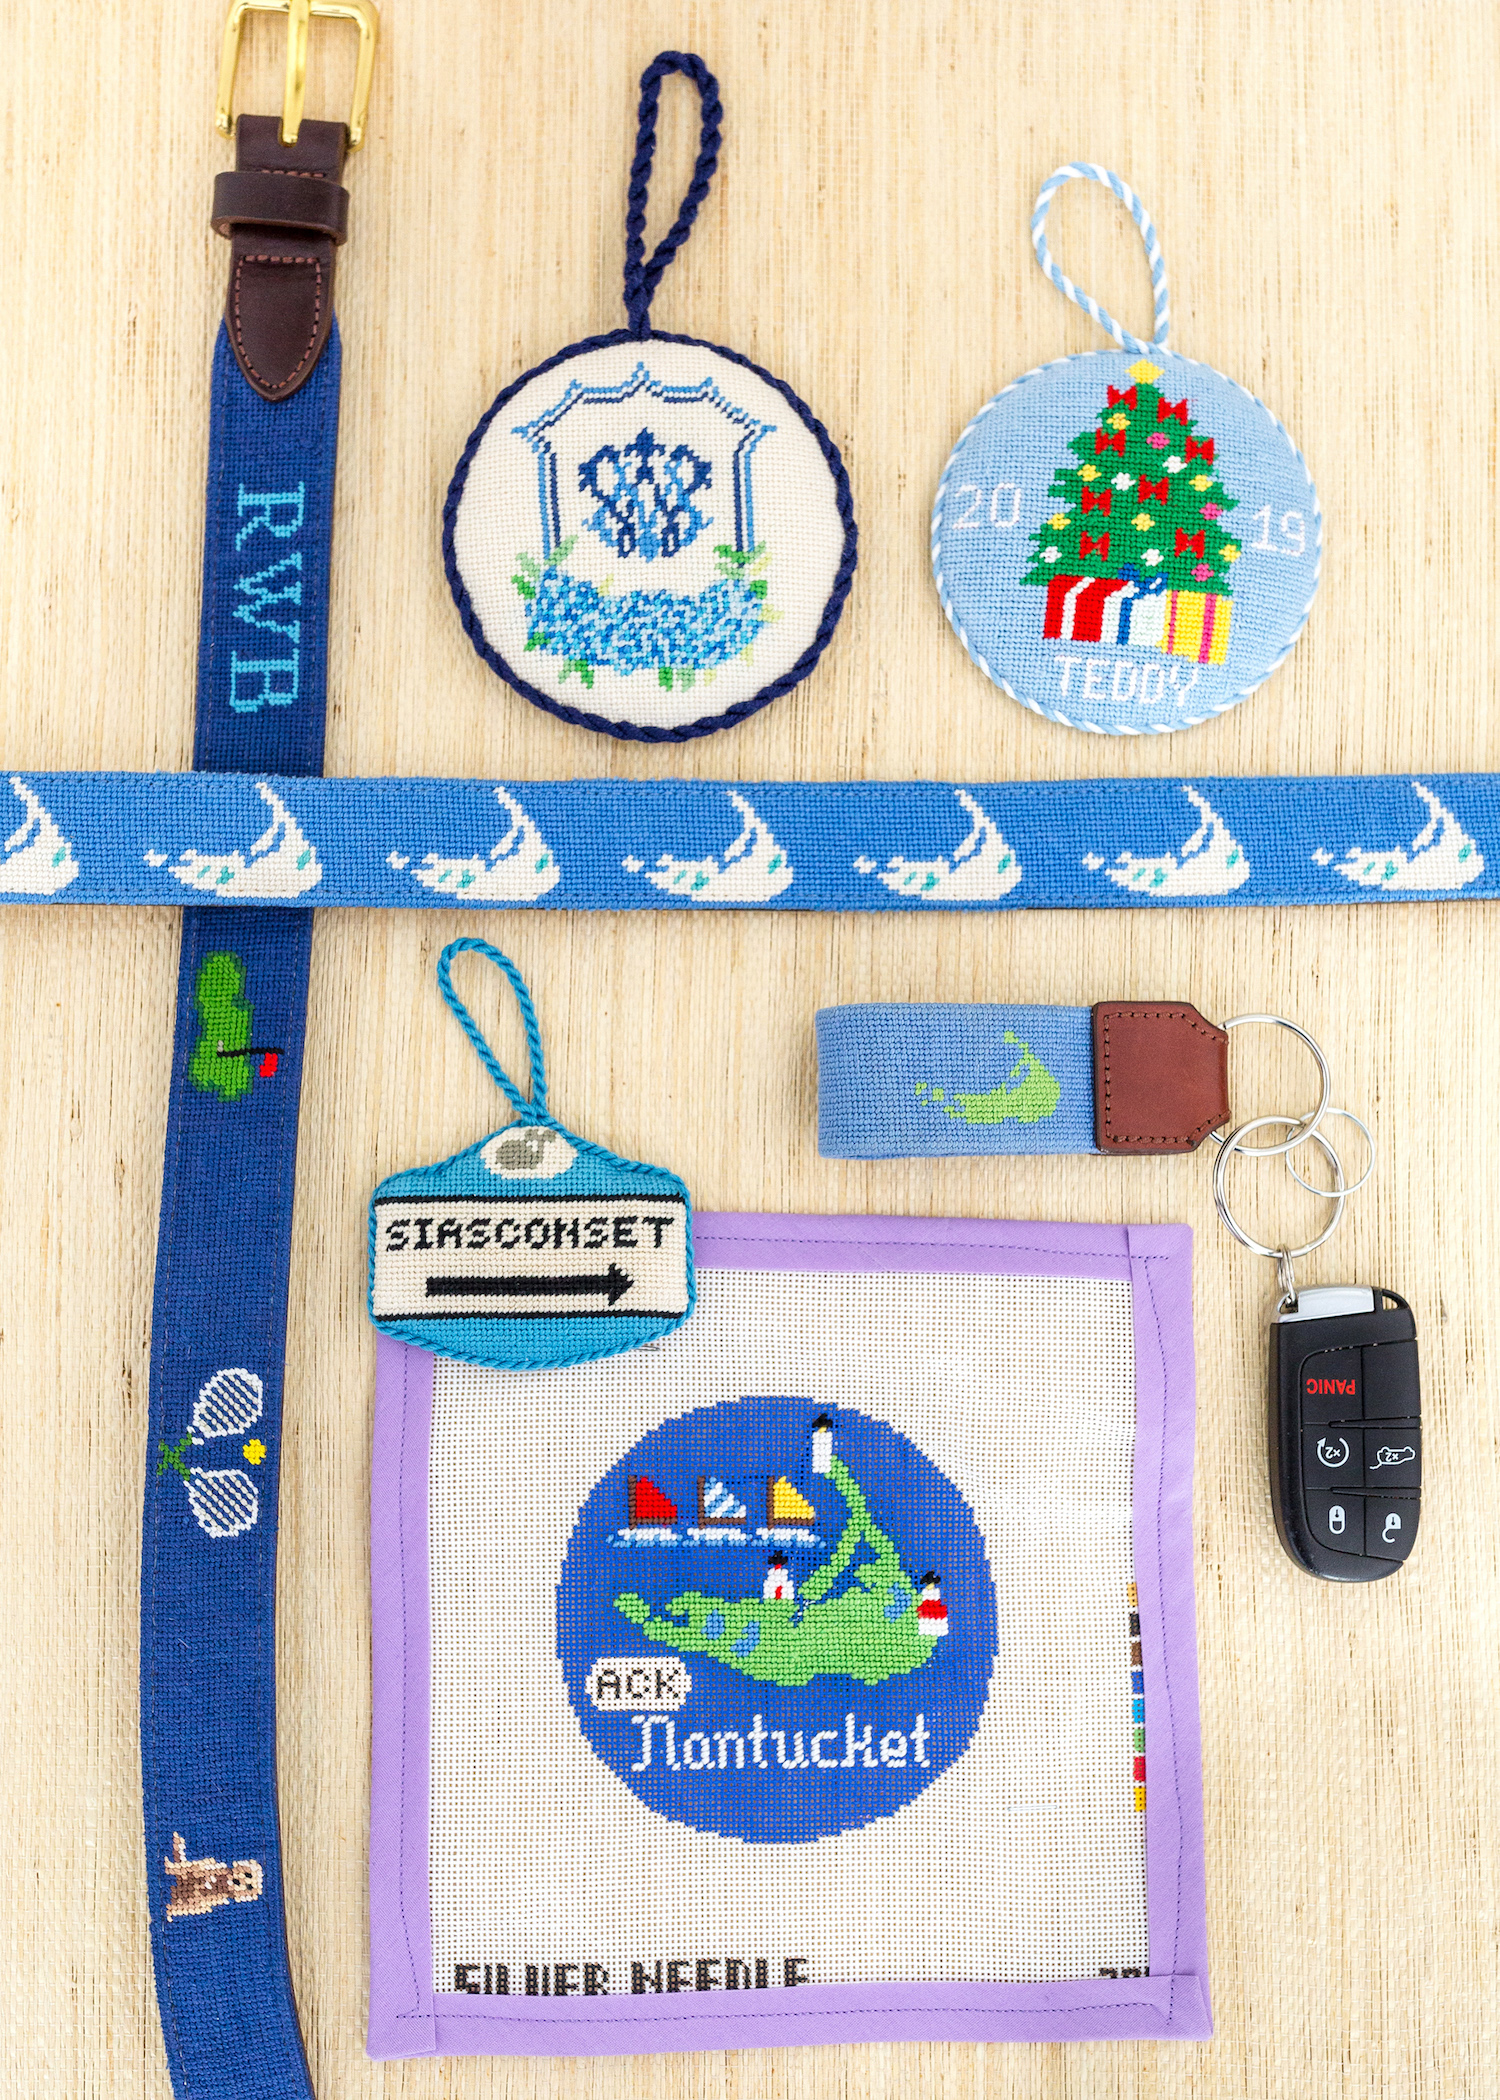 design darling needlepoint projects